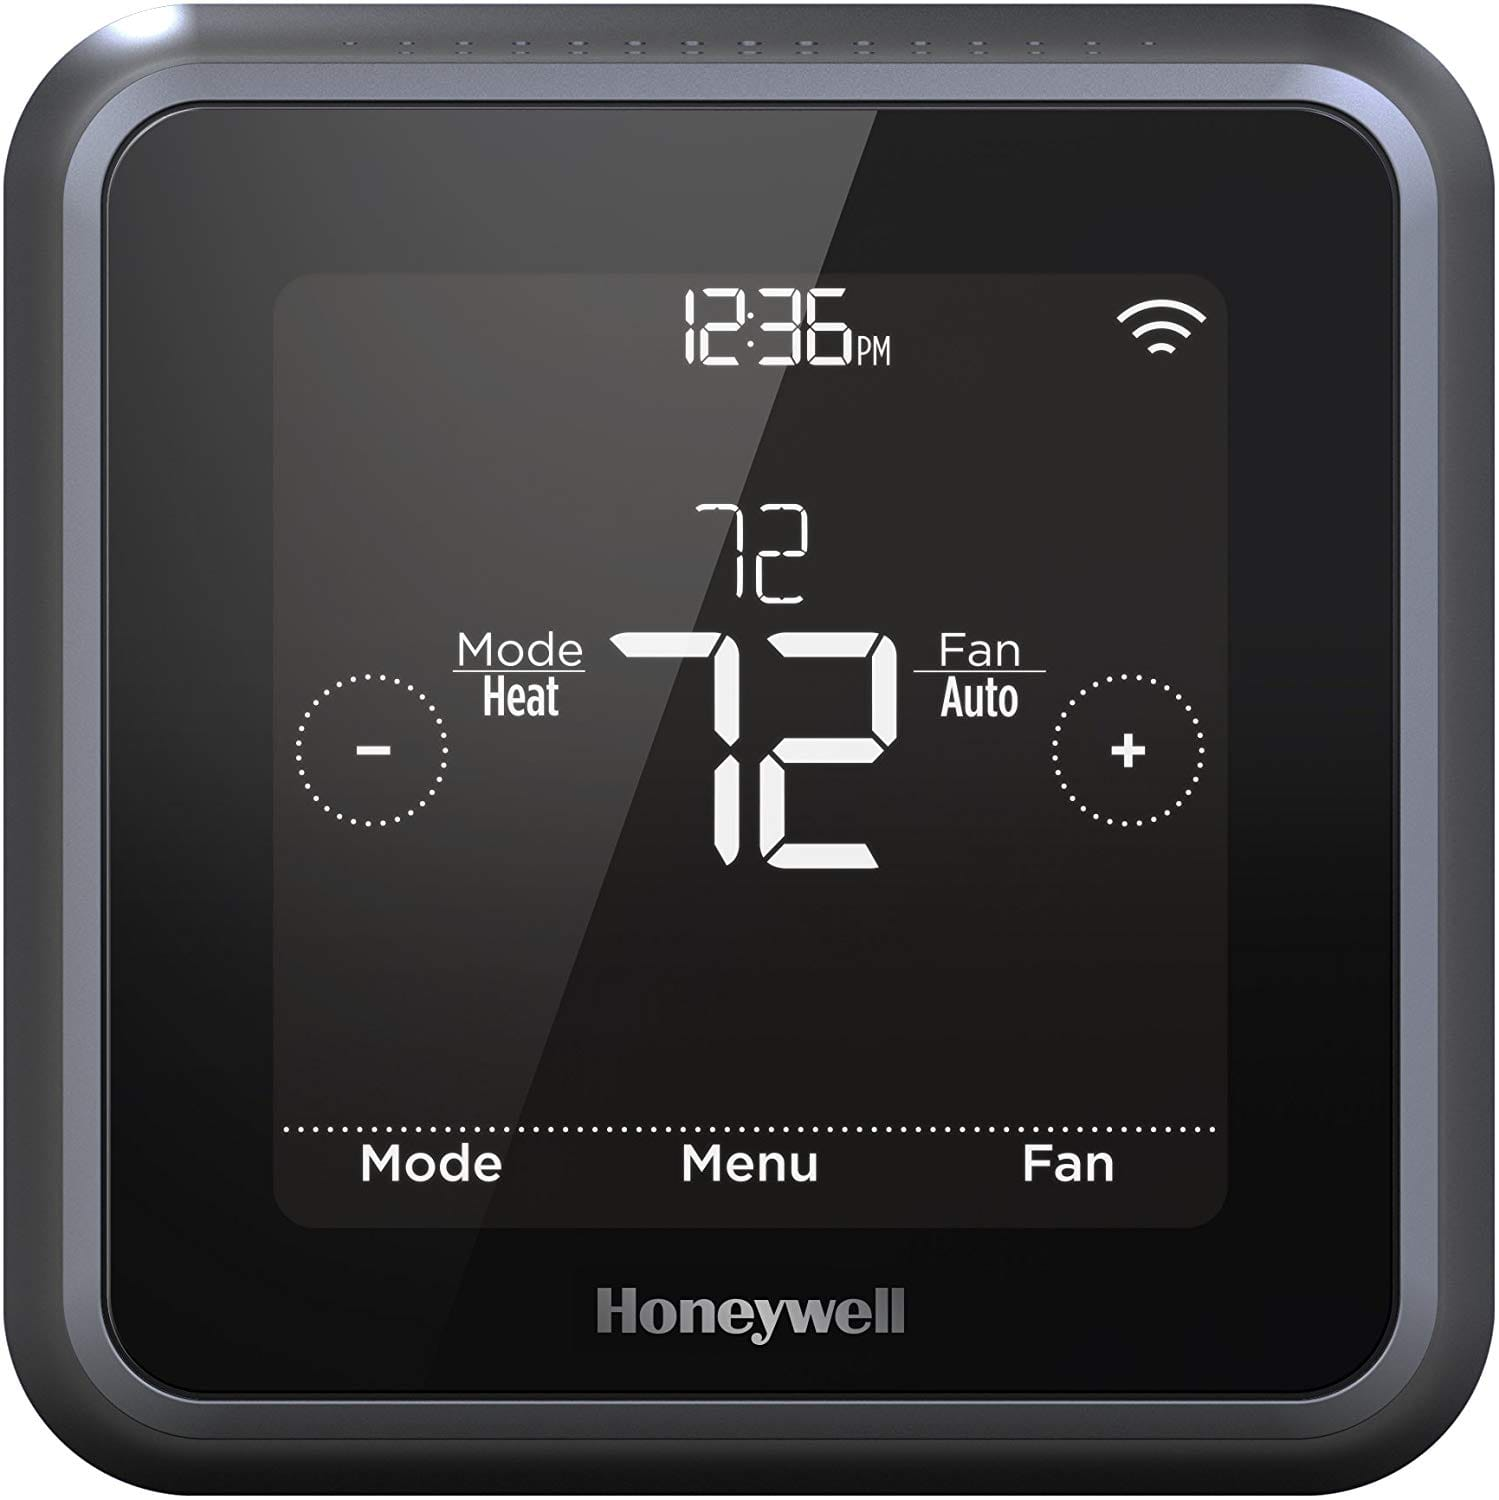 Honeywell Home RCHT8612WF T5 Plus Wi-Fi Touchscreen Smart Thermostat Black 97.85